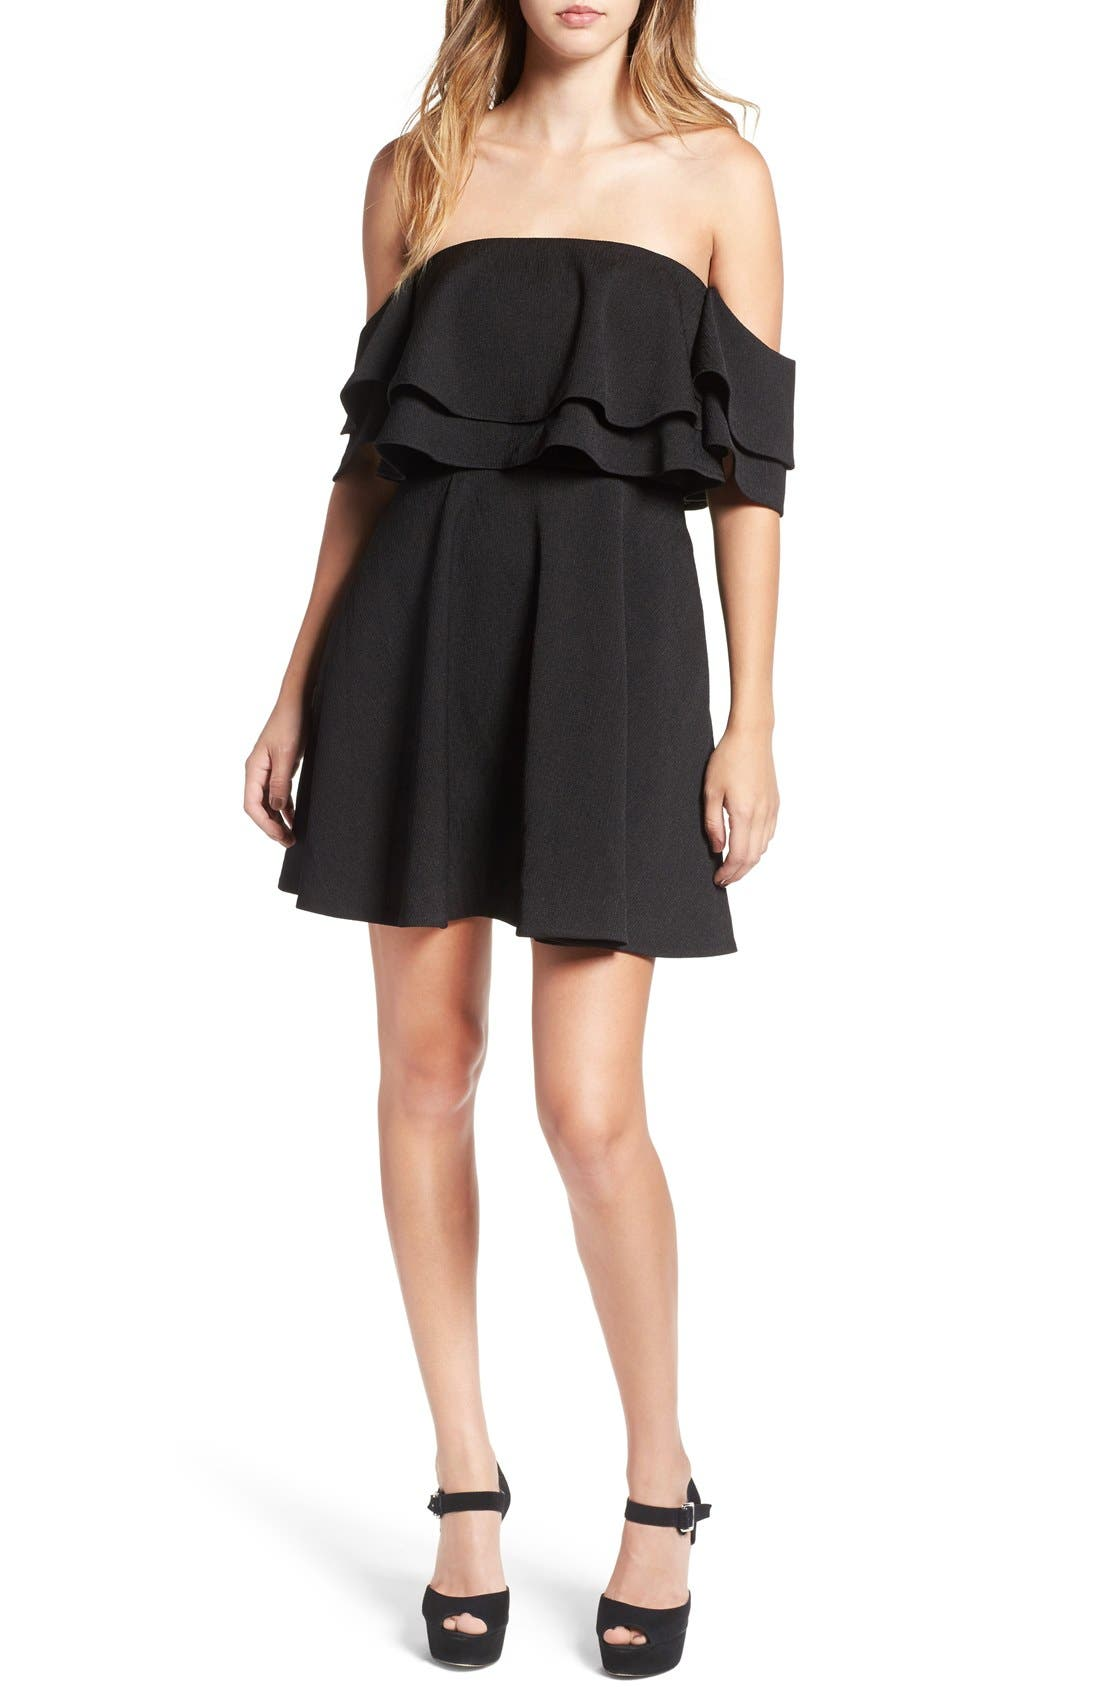 Alternate Image 1 Selected - Keepsake the Label 'Two Fold' Off the Shoulder Minidress